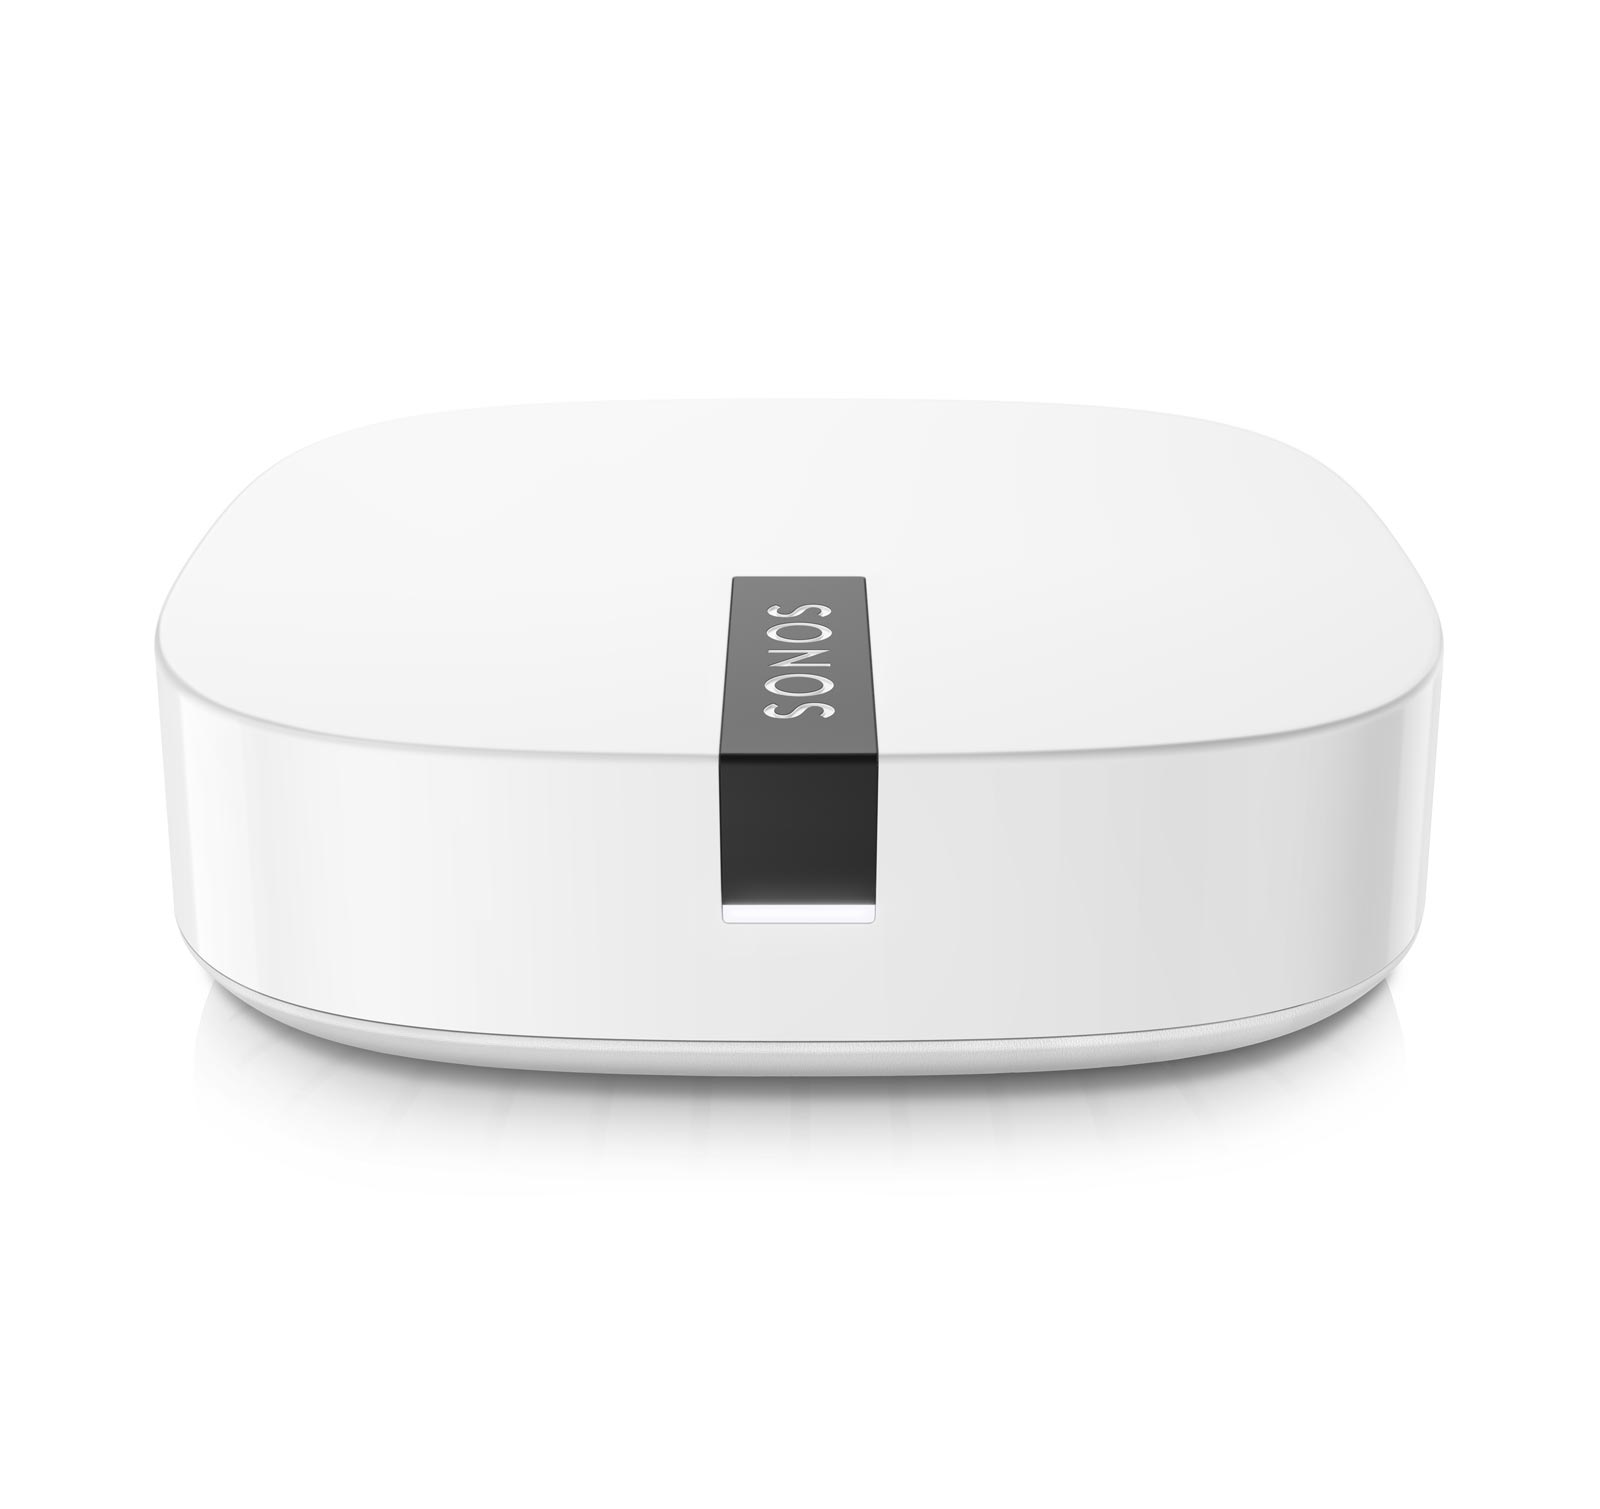 Image of the Sonos Boost Wireless Range Extender